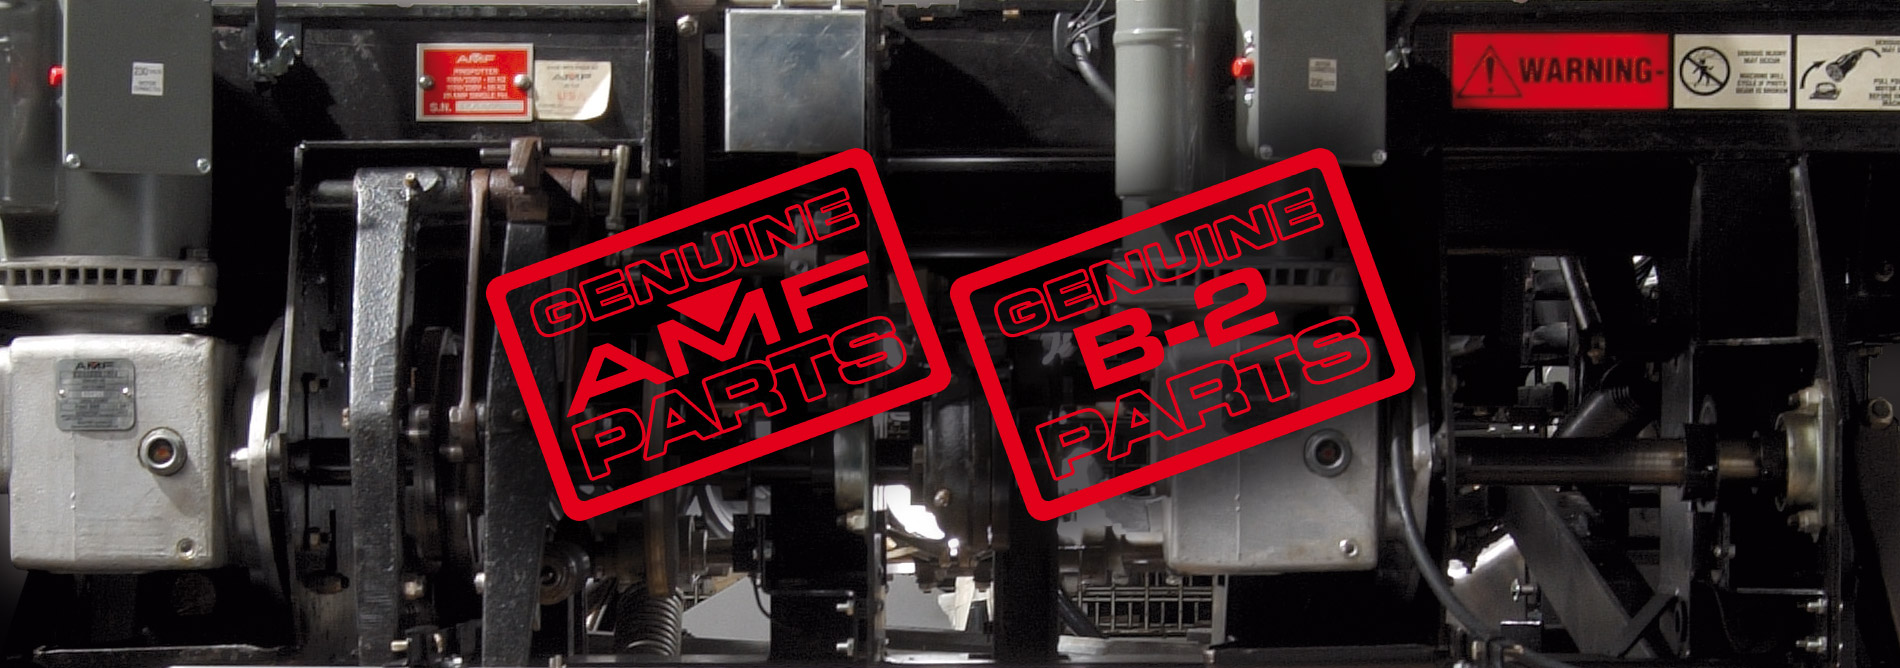 Bowling-QubicaAMF-genuine-parts-banner.jpg